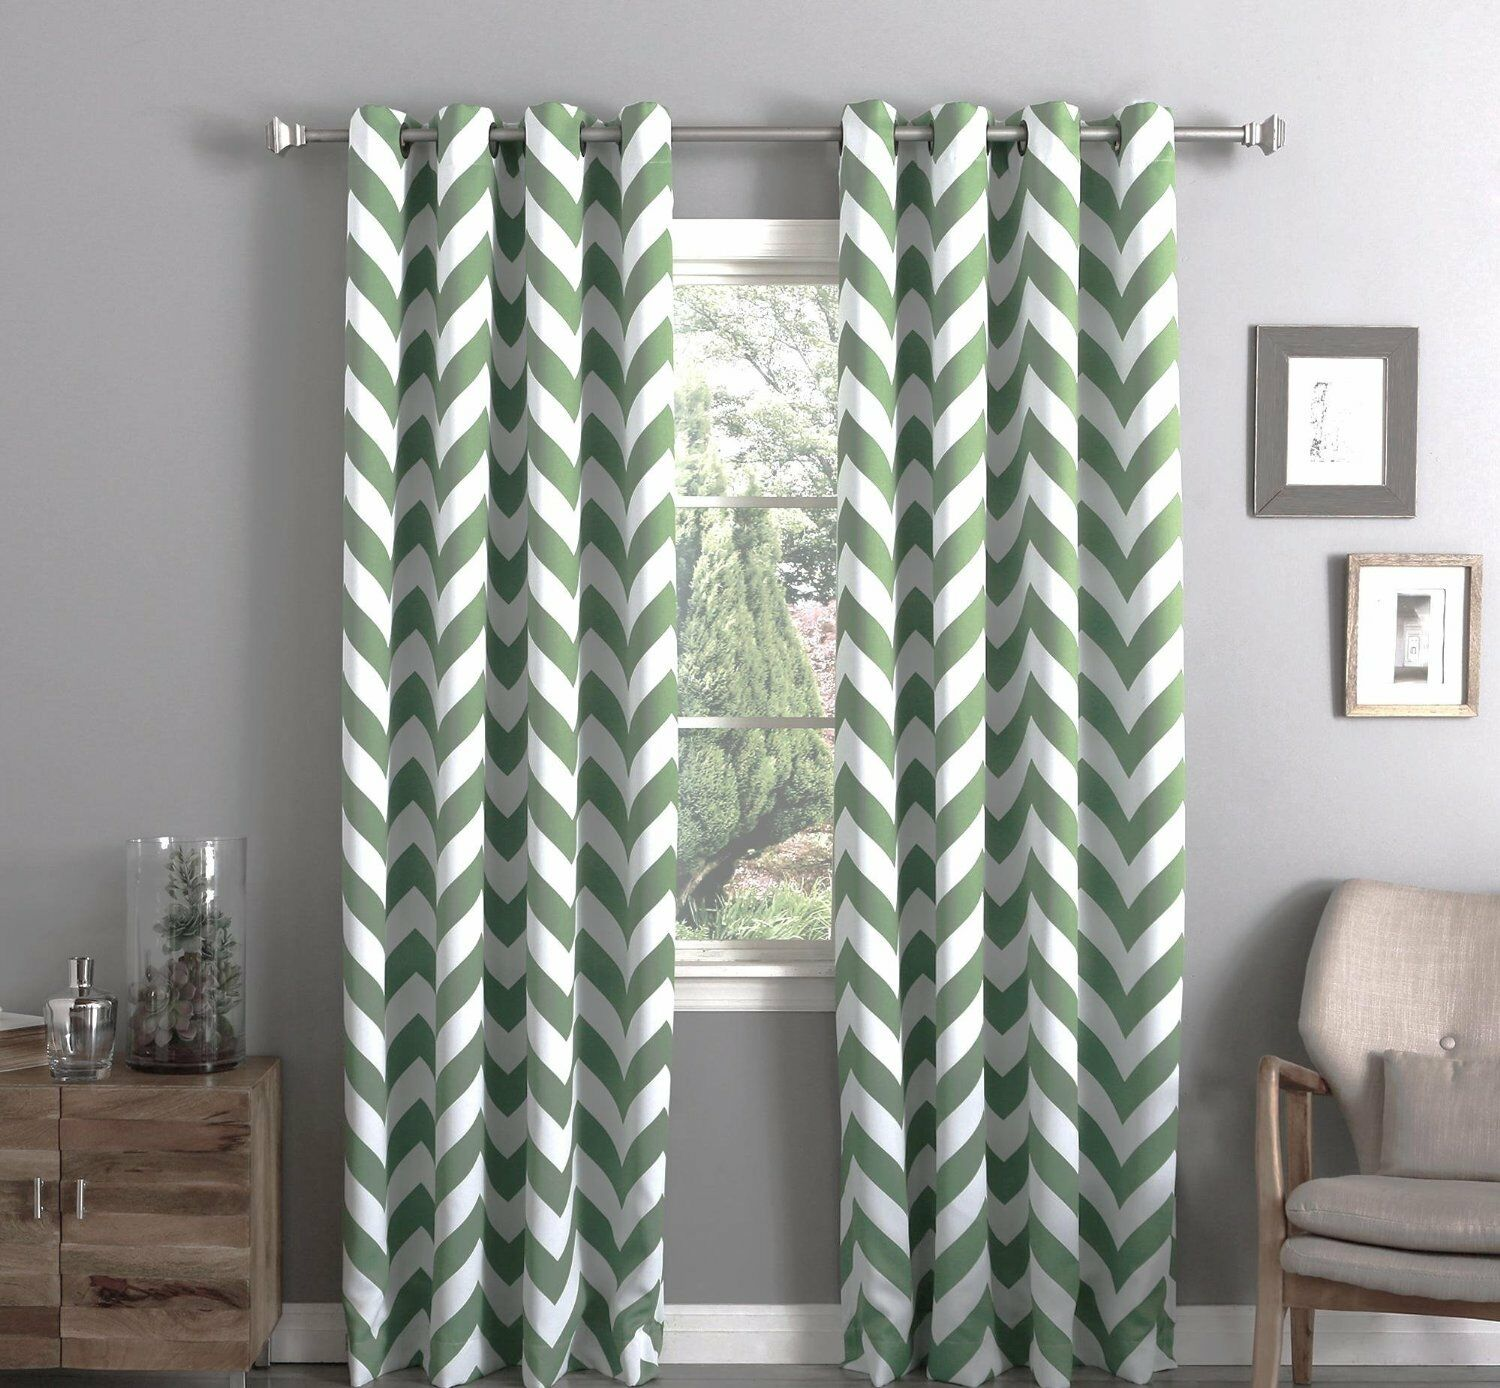 "Chevron 100% Thermal Blackout Grommet Curtain Panel 84"" x 52"" - Sage Green"